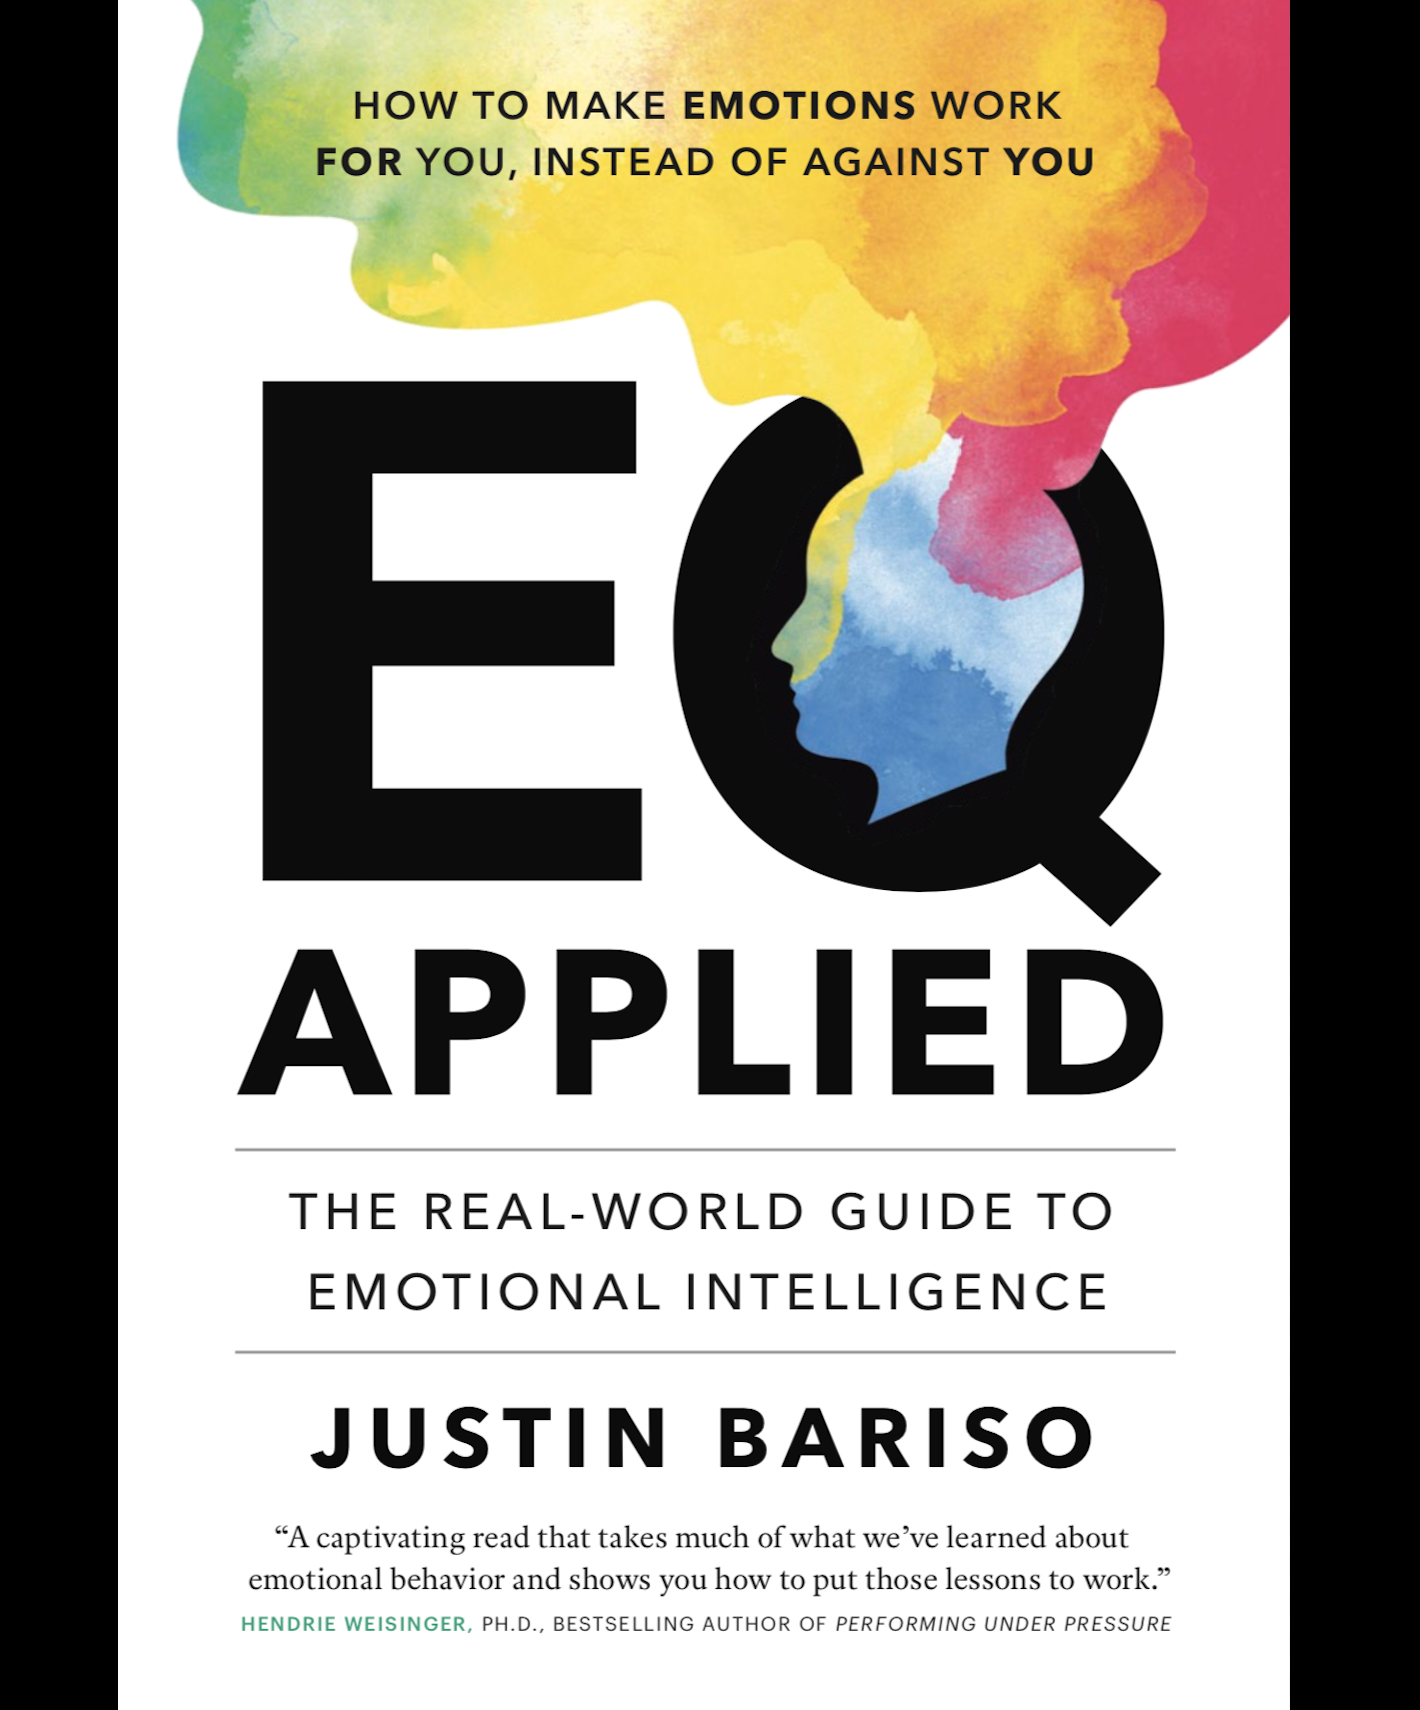 EQ APPLIED - A great book to go with this episode is EQ Applied: The Real-World Guide to Emotional Intelligence, by today's guest, author and columnist Justin Bariso. Filled with fascinating research, modern examples, and personal stories to illustrate how emotional intelligence really works. Learn now to make your emotions work for you, instead of against you.To download your free audiobook today click, http://www.audibletrial.com/WhyItWorksIf you prefer paper, Kindle or are already an Audible member, no problem - buy the book here.